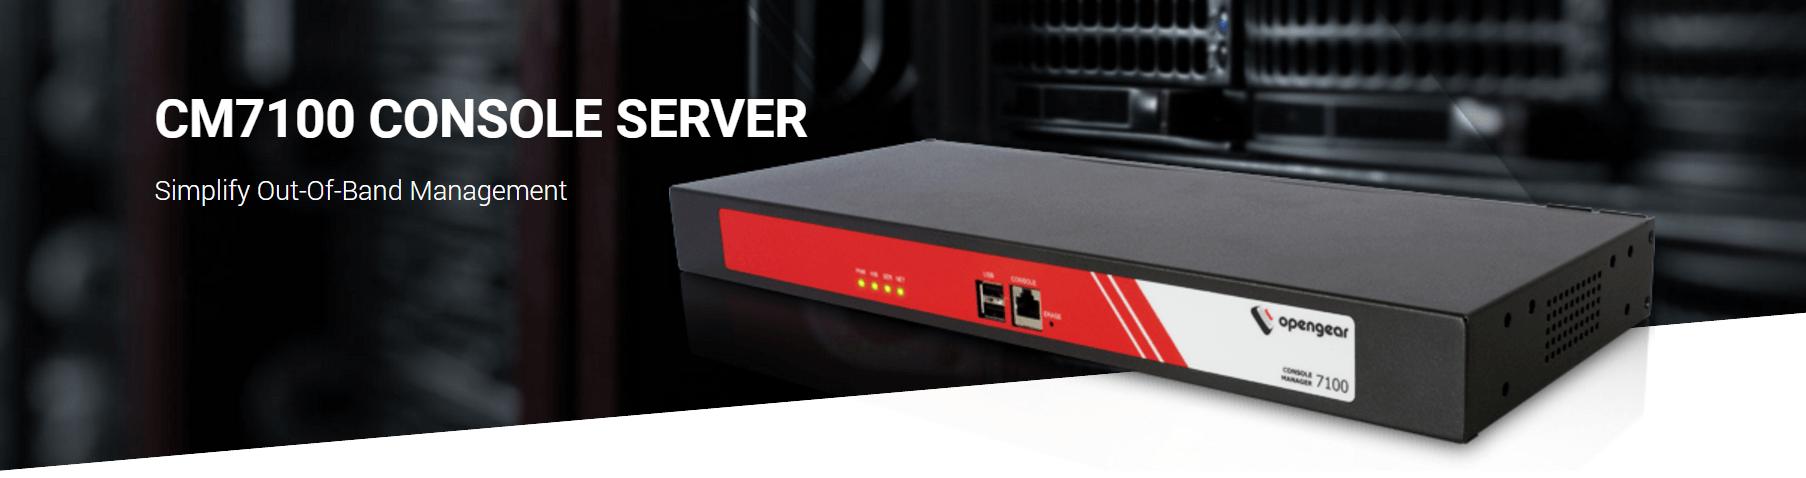 opengear-data-center-management-cm7100-console-server